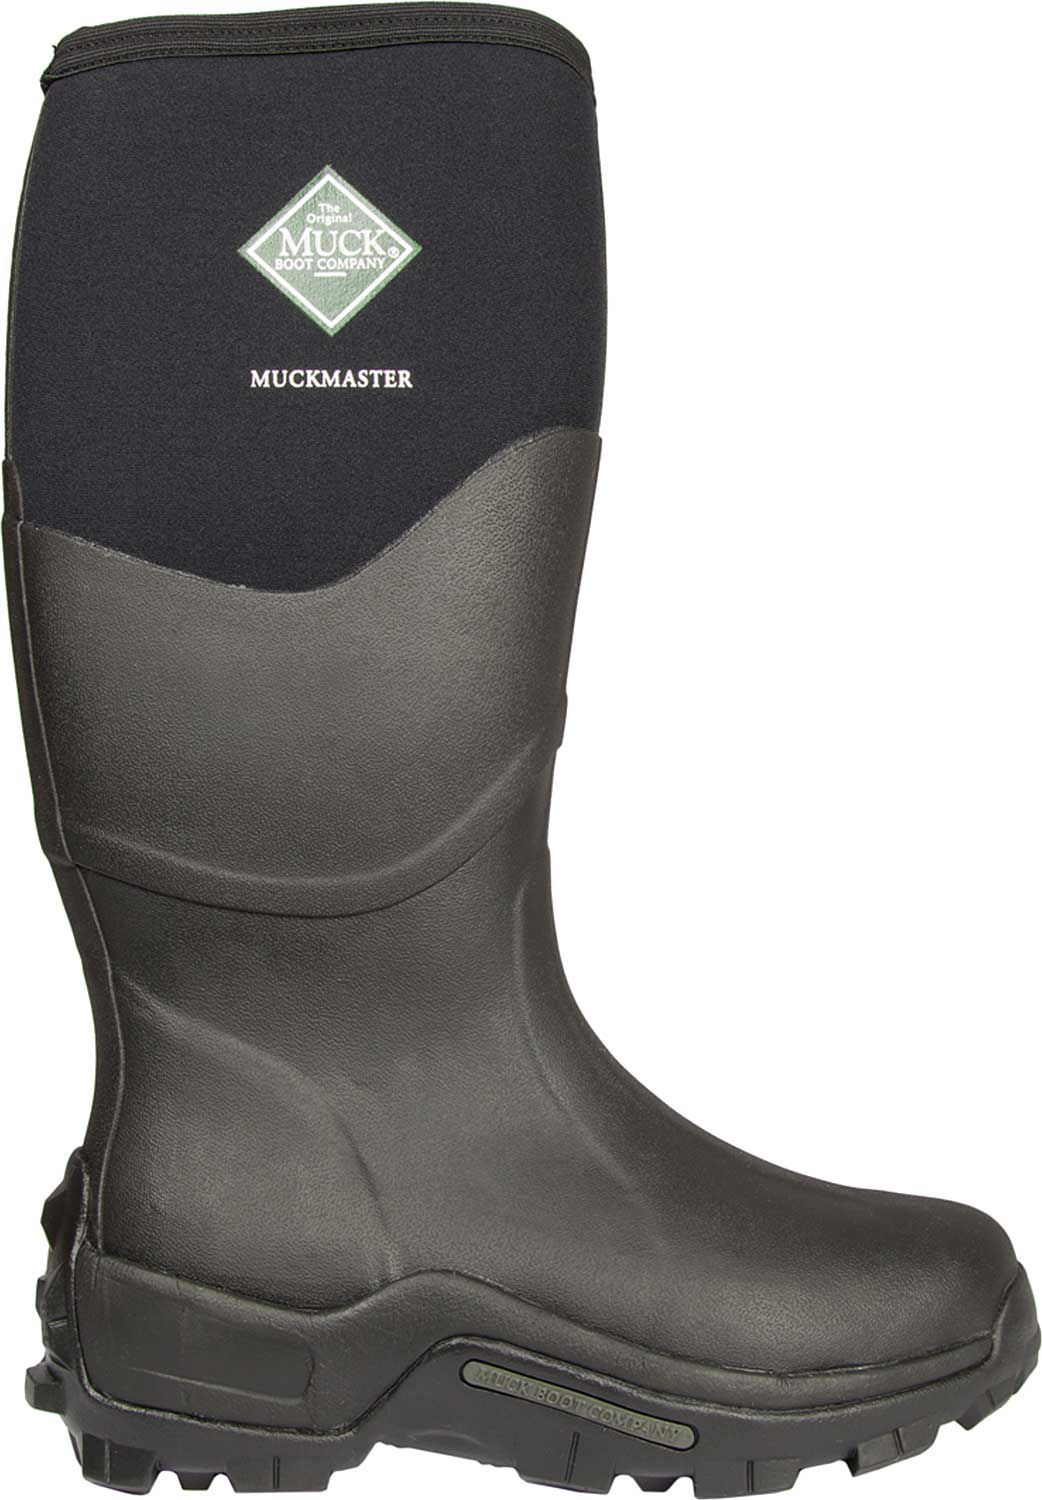 Muck Boot Men's Muckmaster High Waterproof Work Boots| DICK'S ...